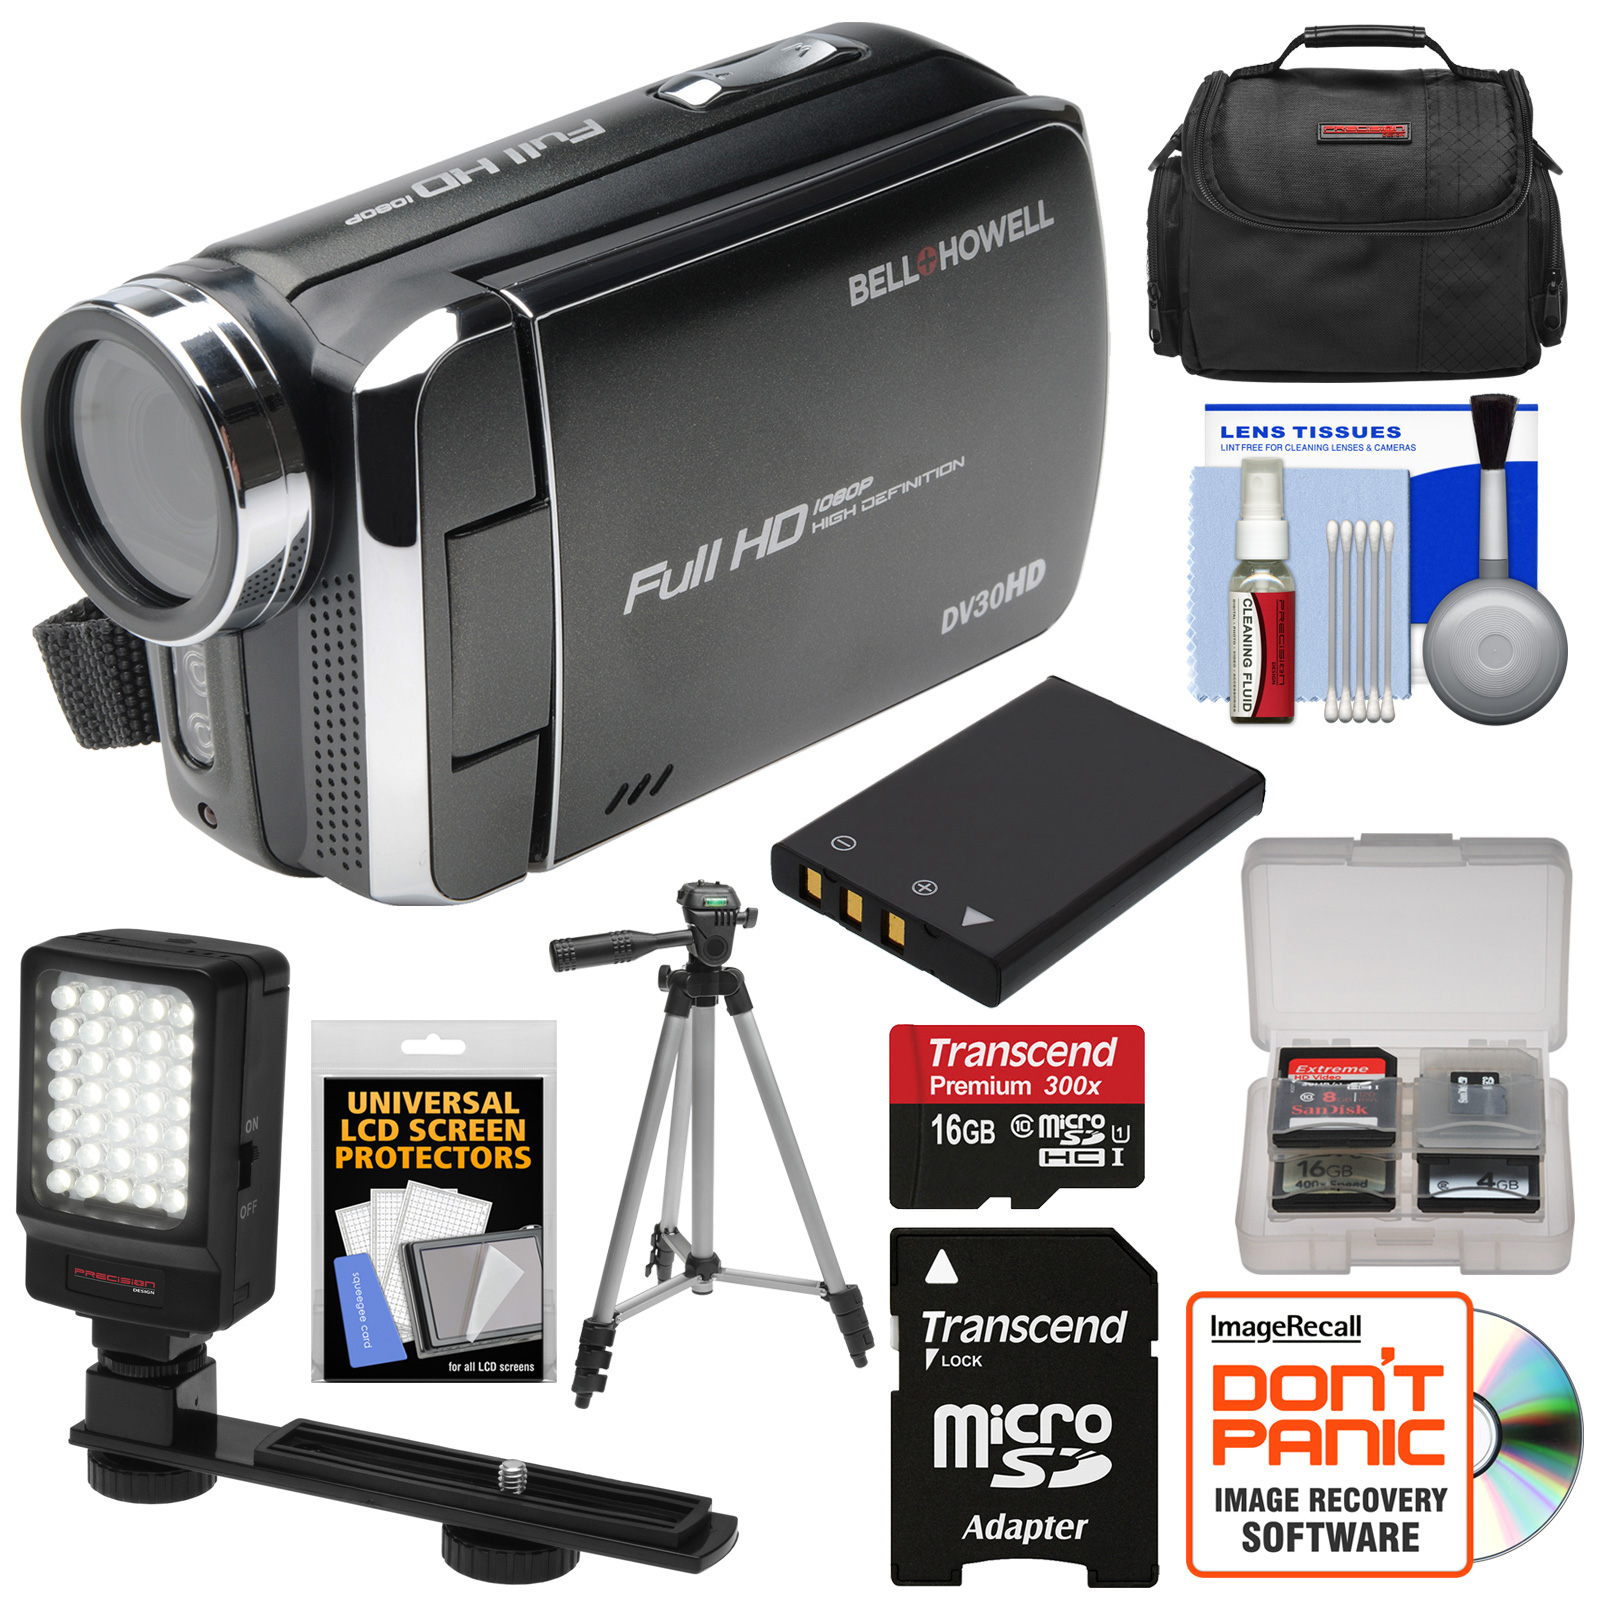 Bell & Howell DV30HD 1080p HD Video Camera Camcorder (Bla...